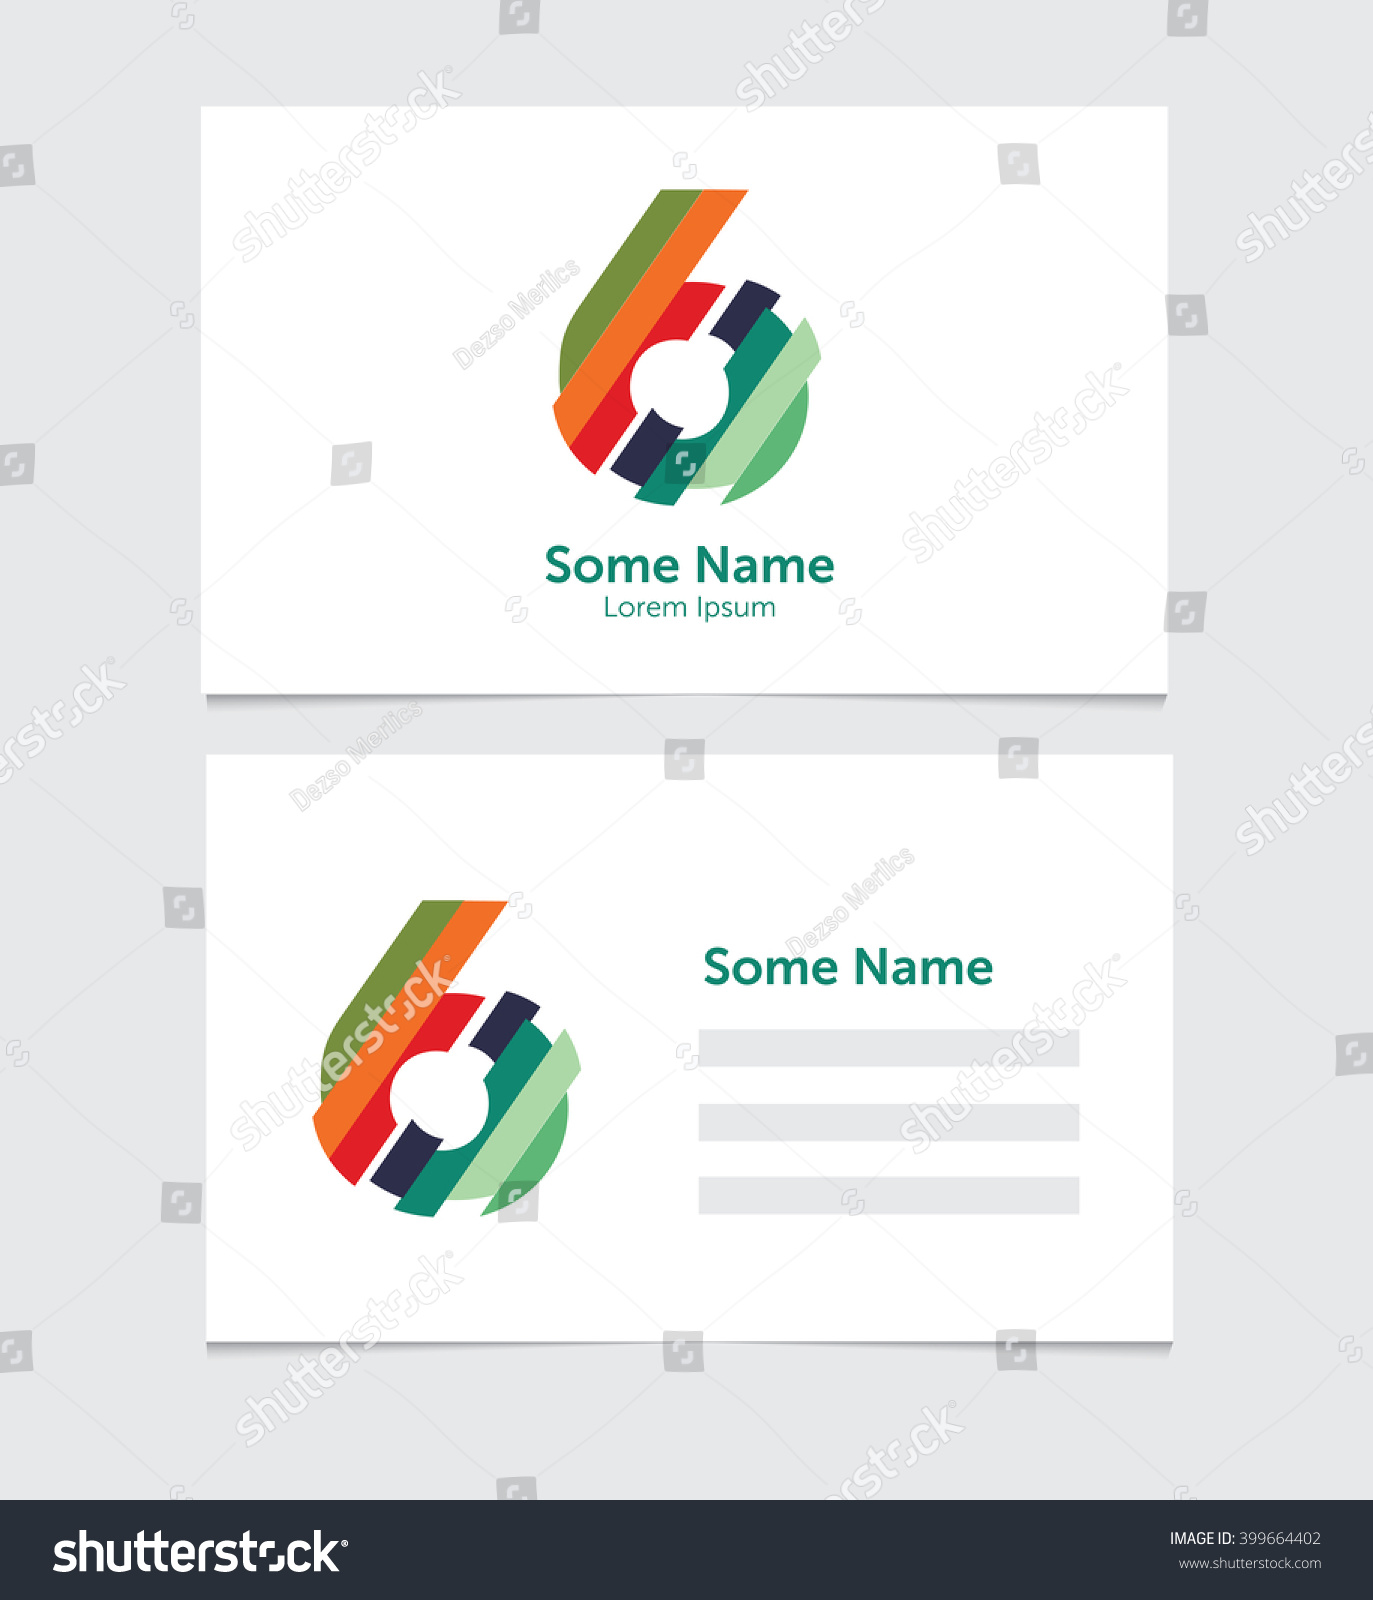 Business card number images free business cards business card number images free business cards business card number 6vector stock vector 399664402 shutterstock business magicingreecefo Gallery